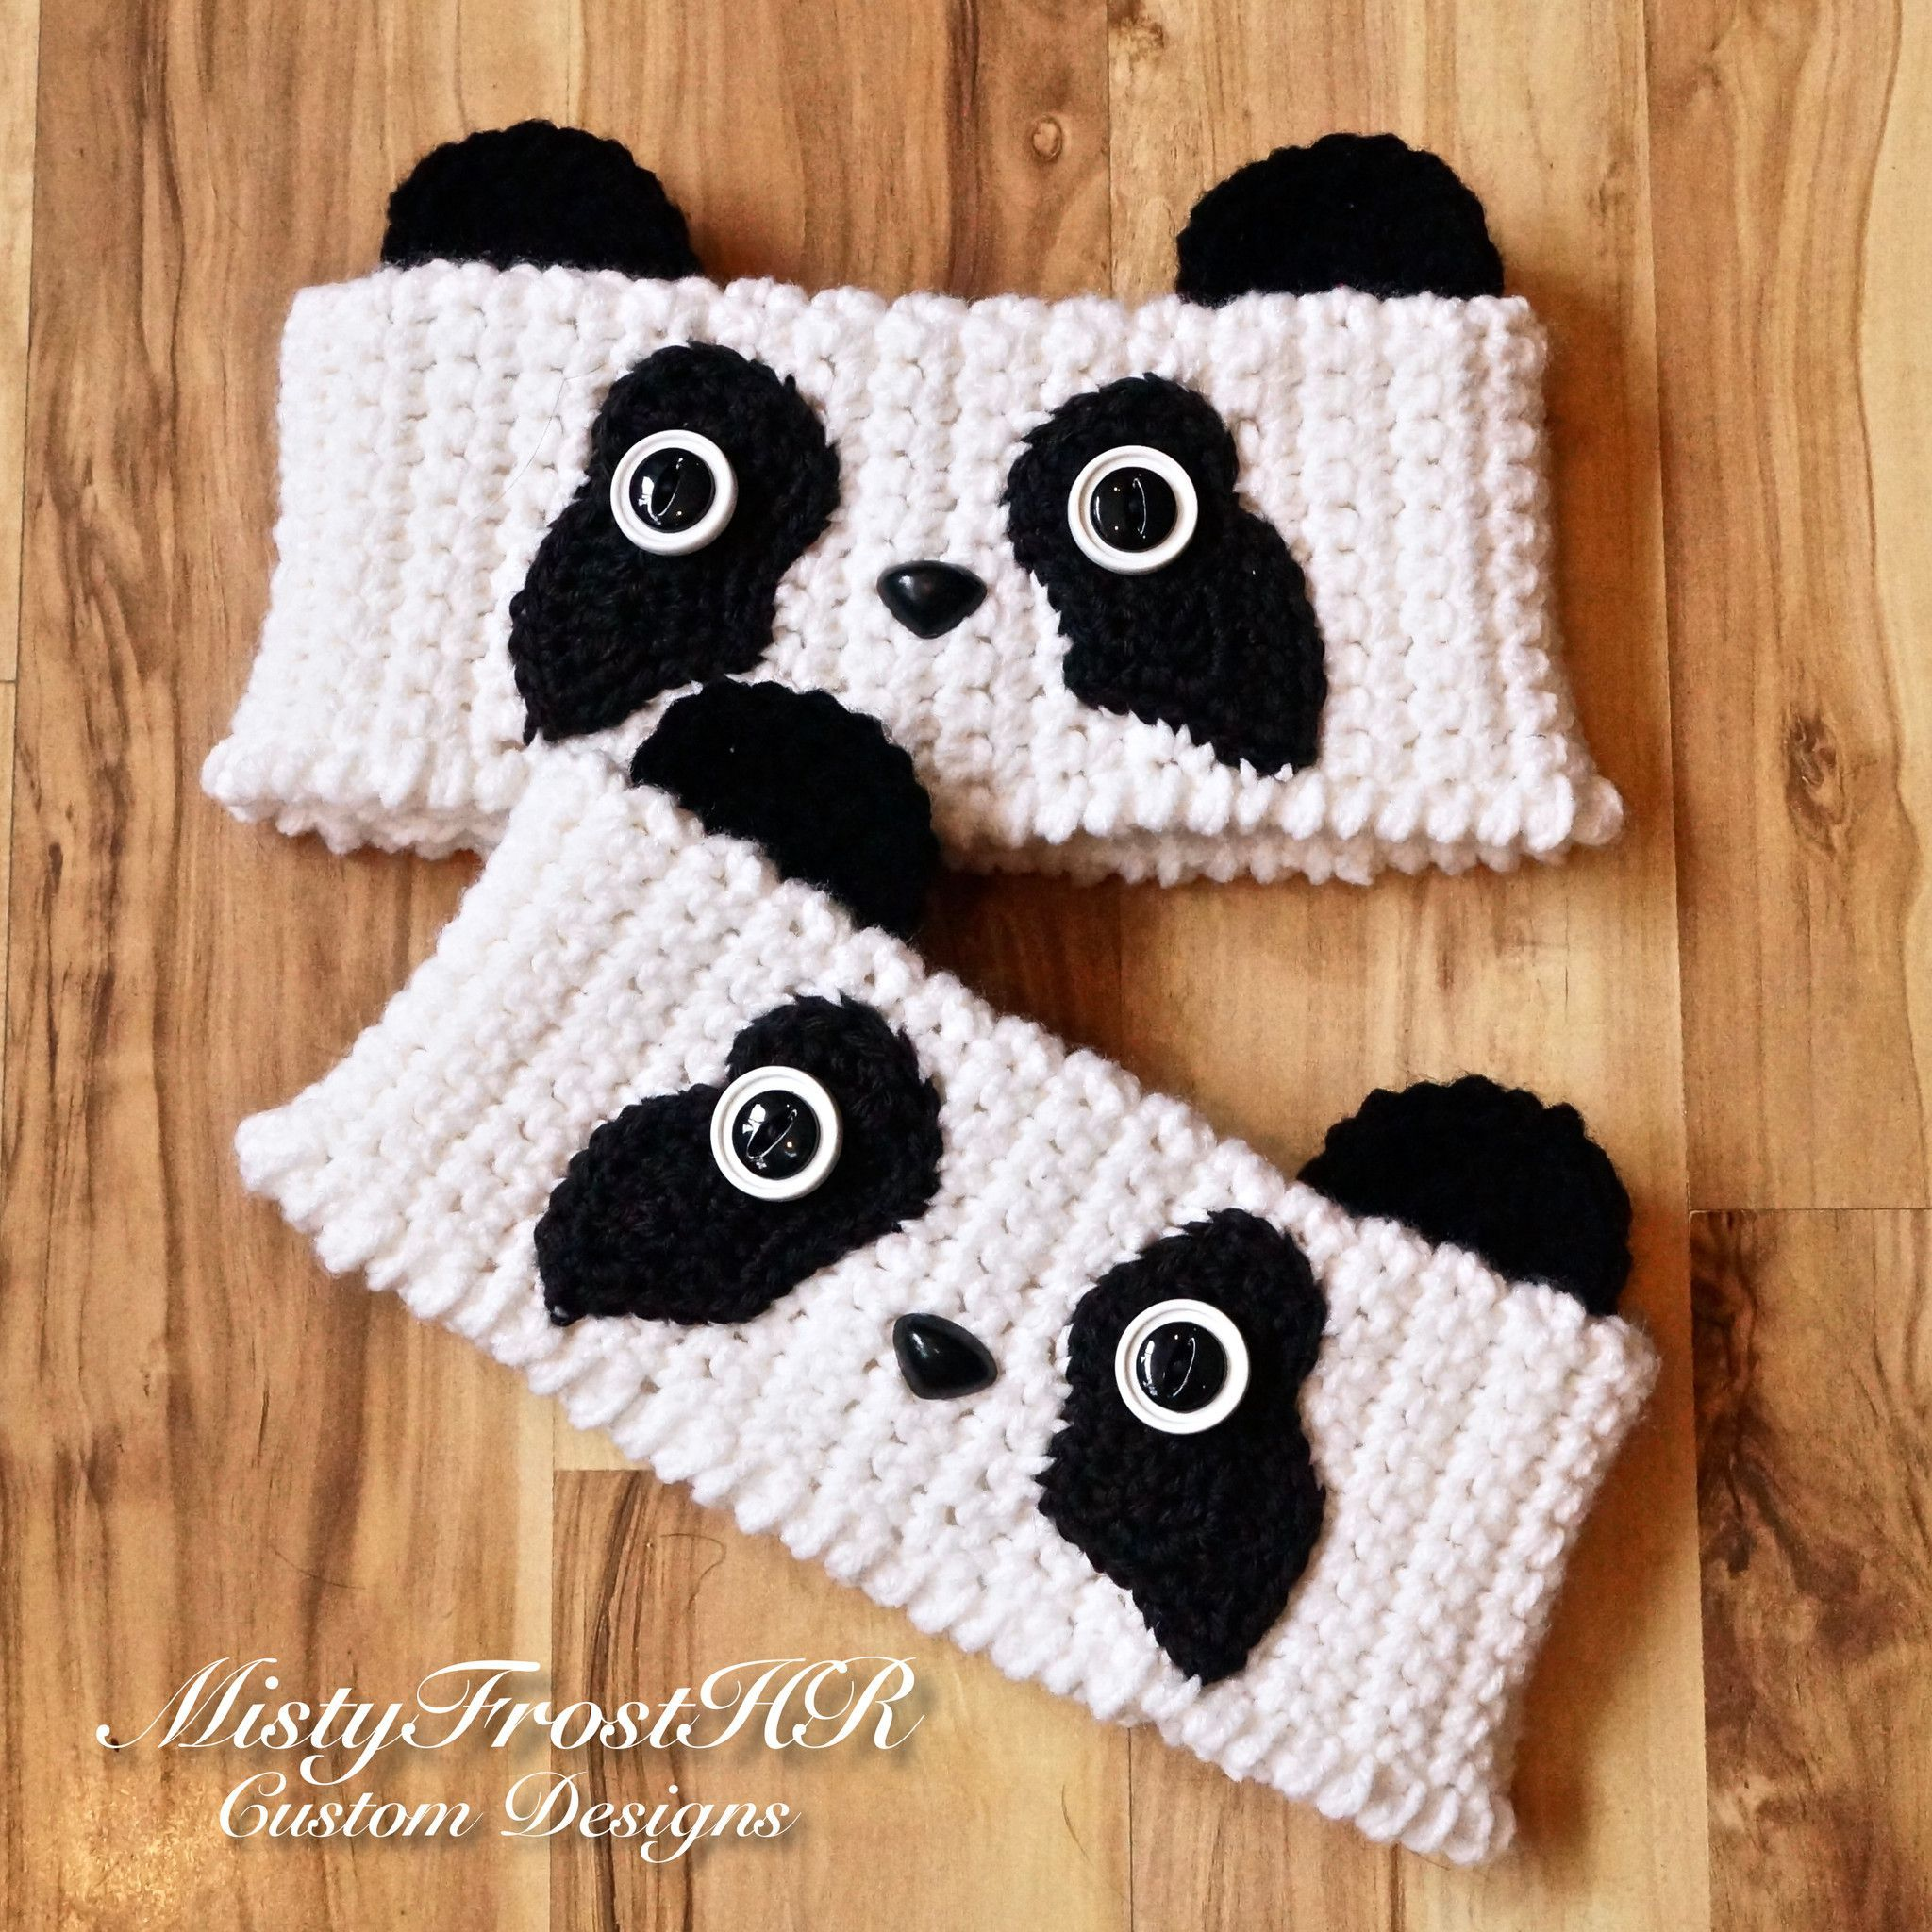 Crochet Perfectly Panda Bear Boot Cuff Toppers | Mütze, Gehäkelte ...